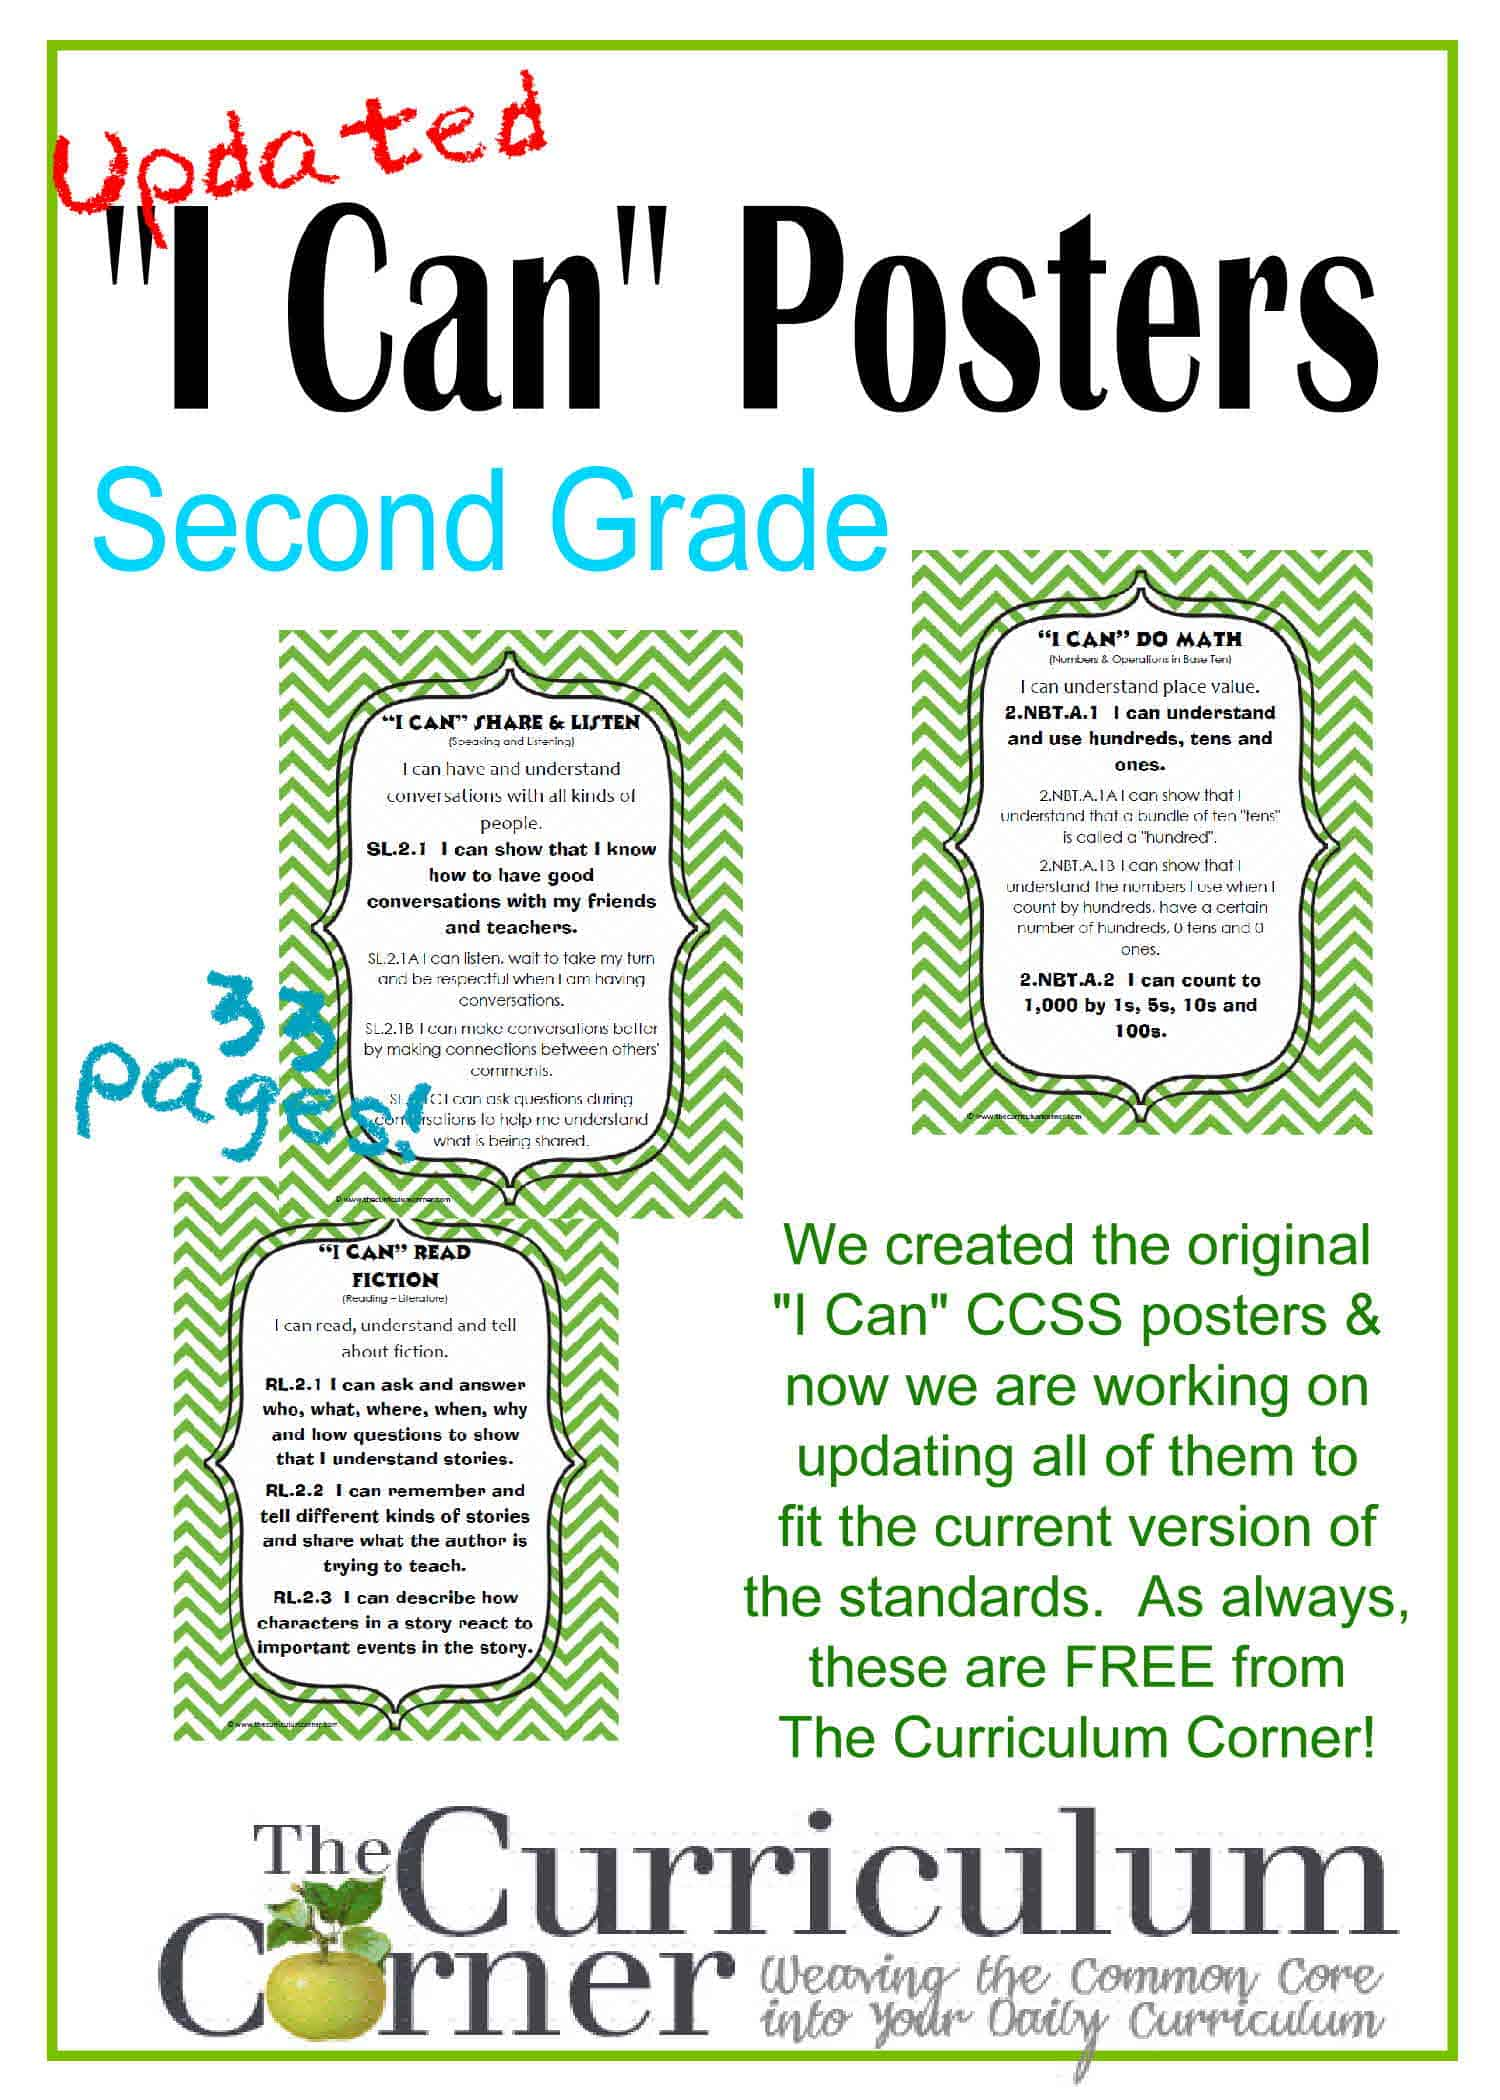 Updated 2nd Grade I Can Ccss Posters In Green Chevron